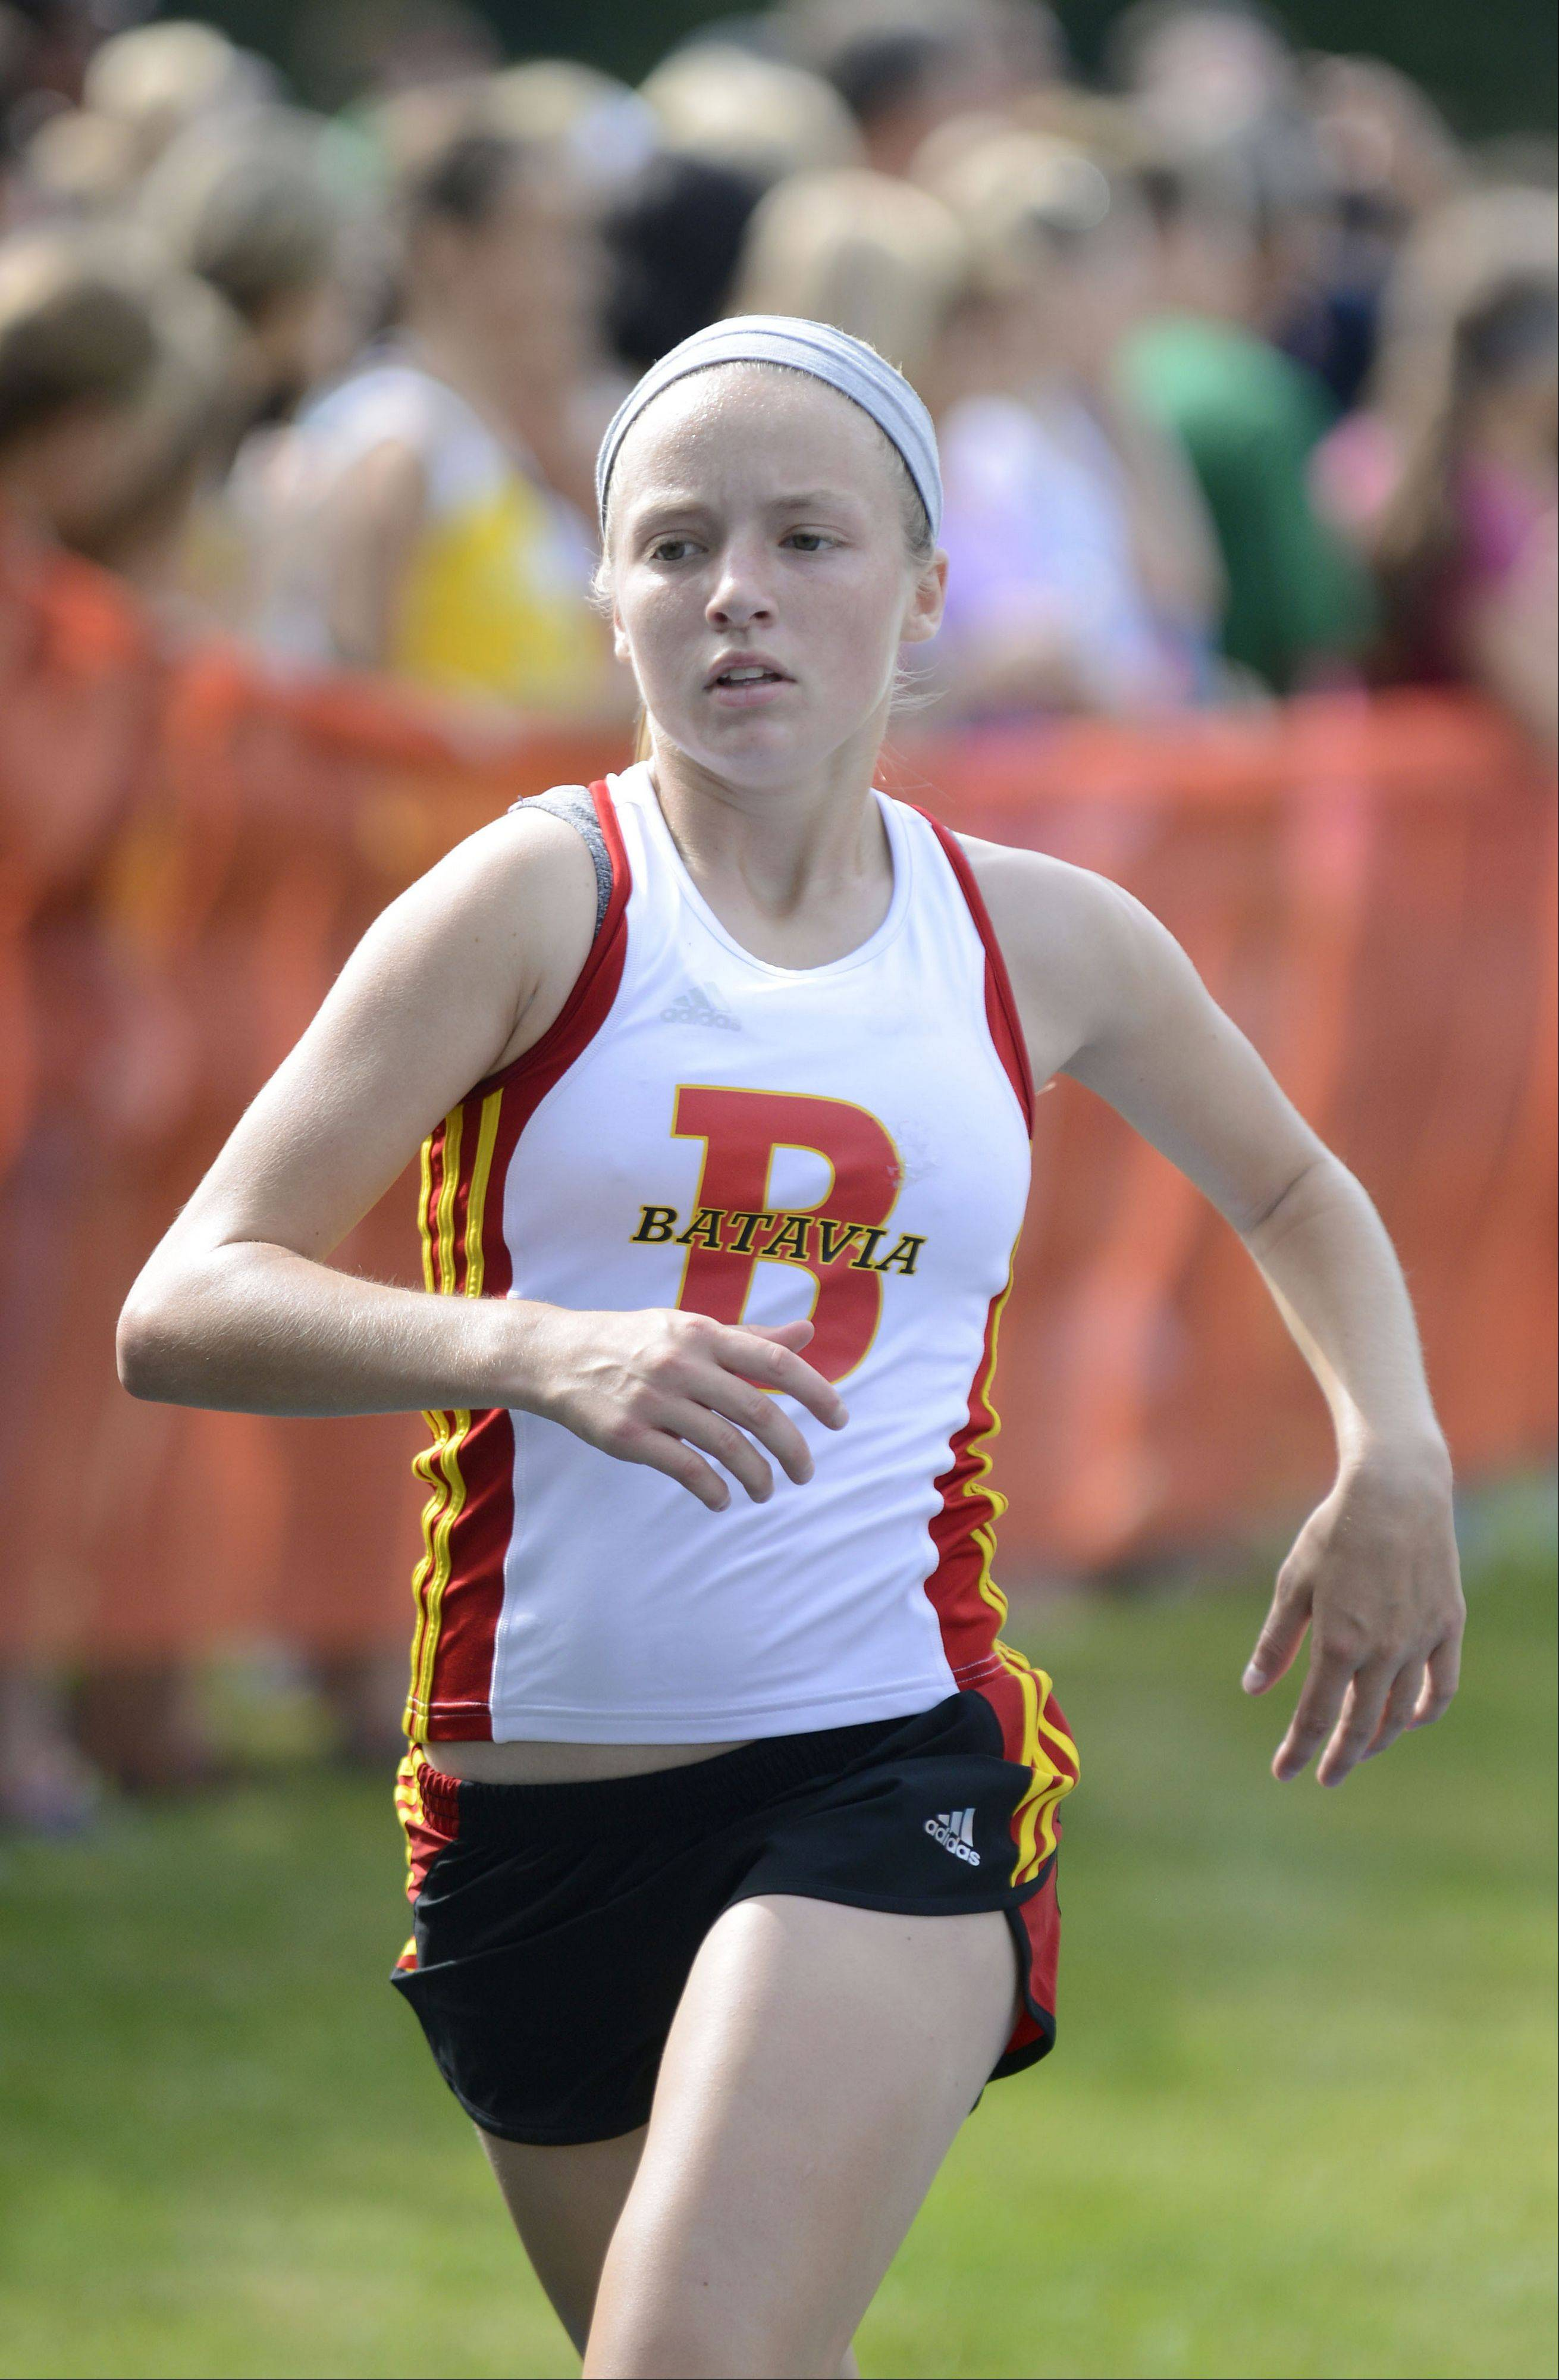 Batavia's Dakota Roman nears the finish line in the meet at Leroy Oakes Forest Preserve in St. Charles on Saturday, September 7.